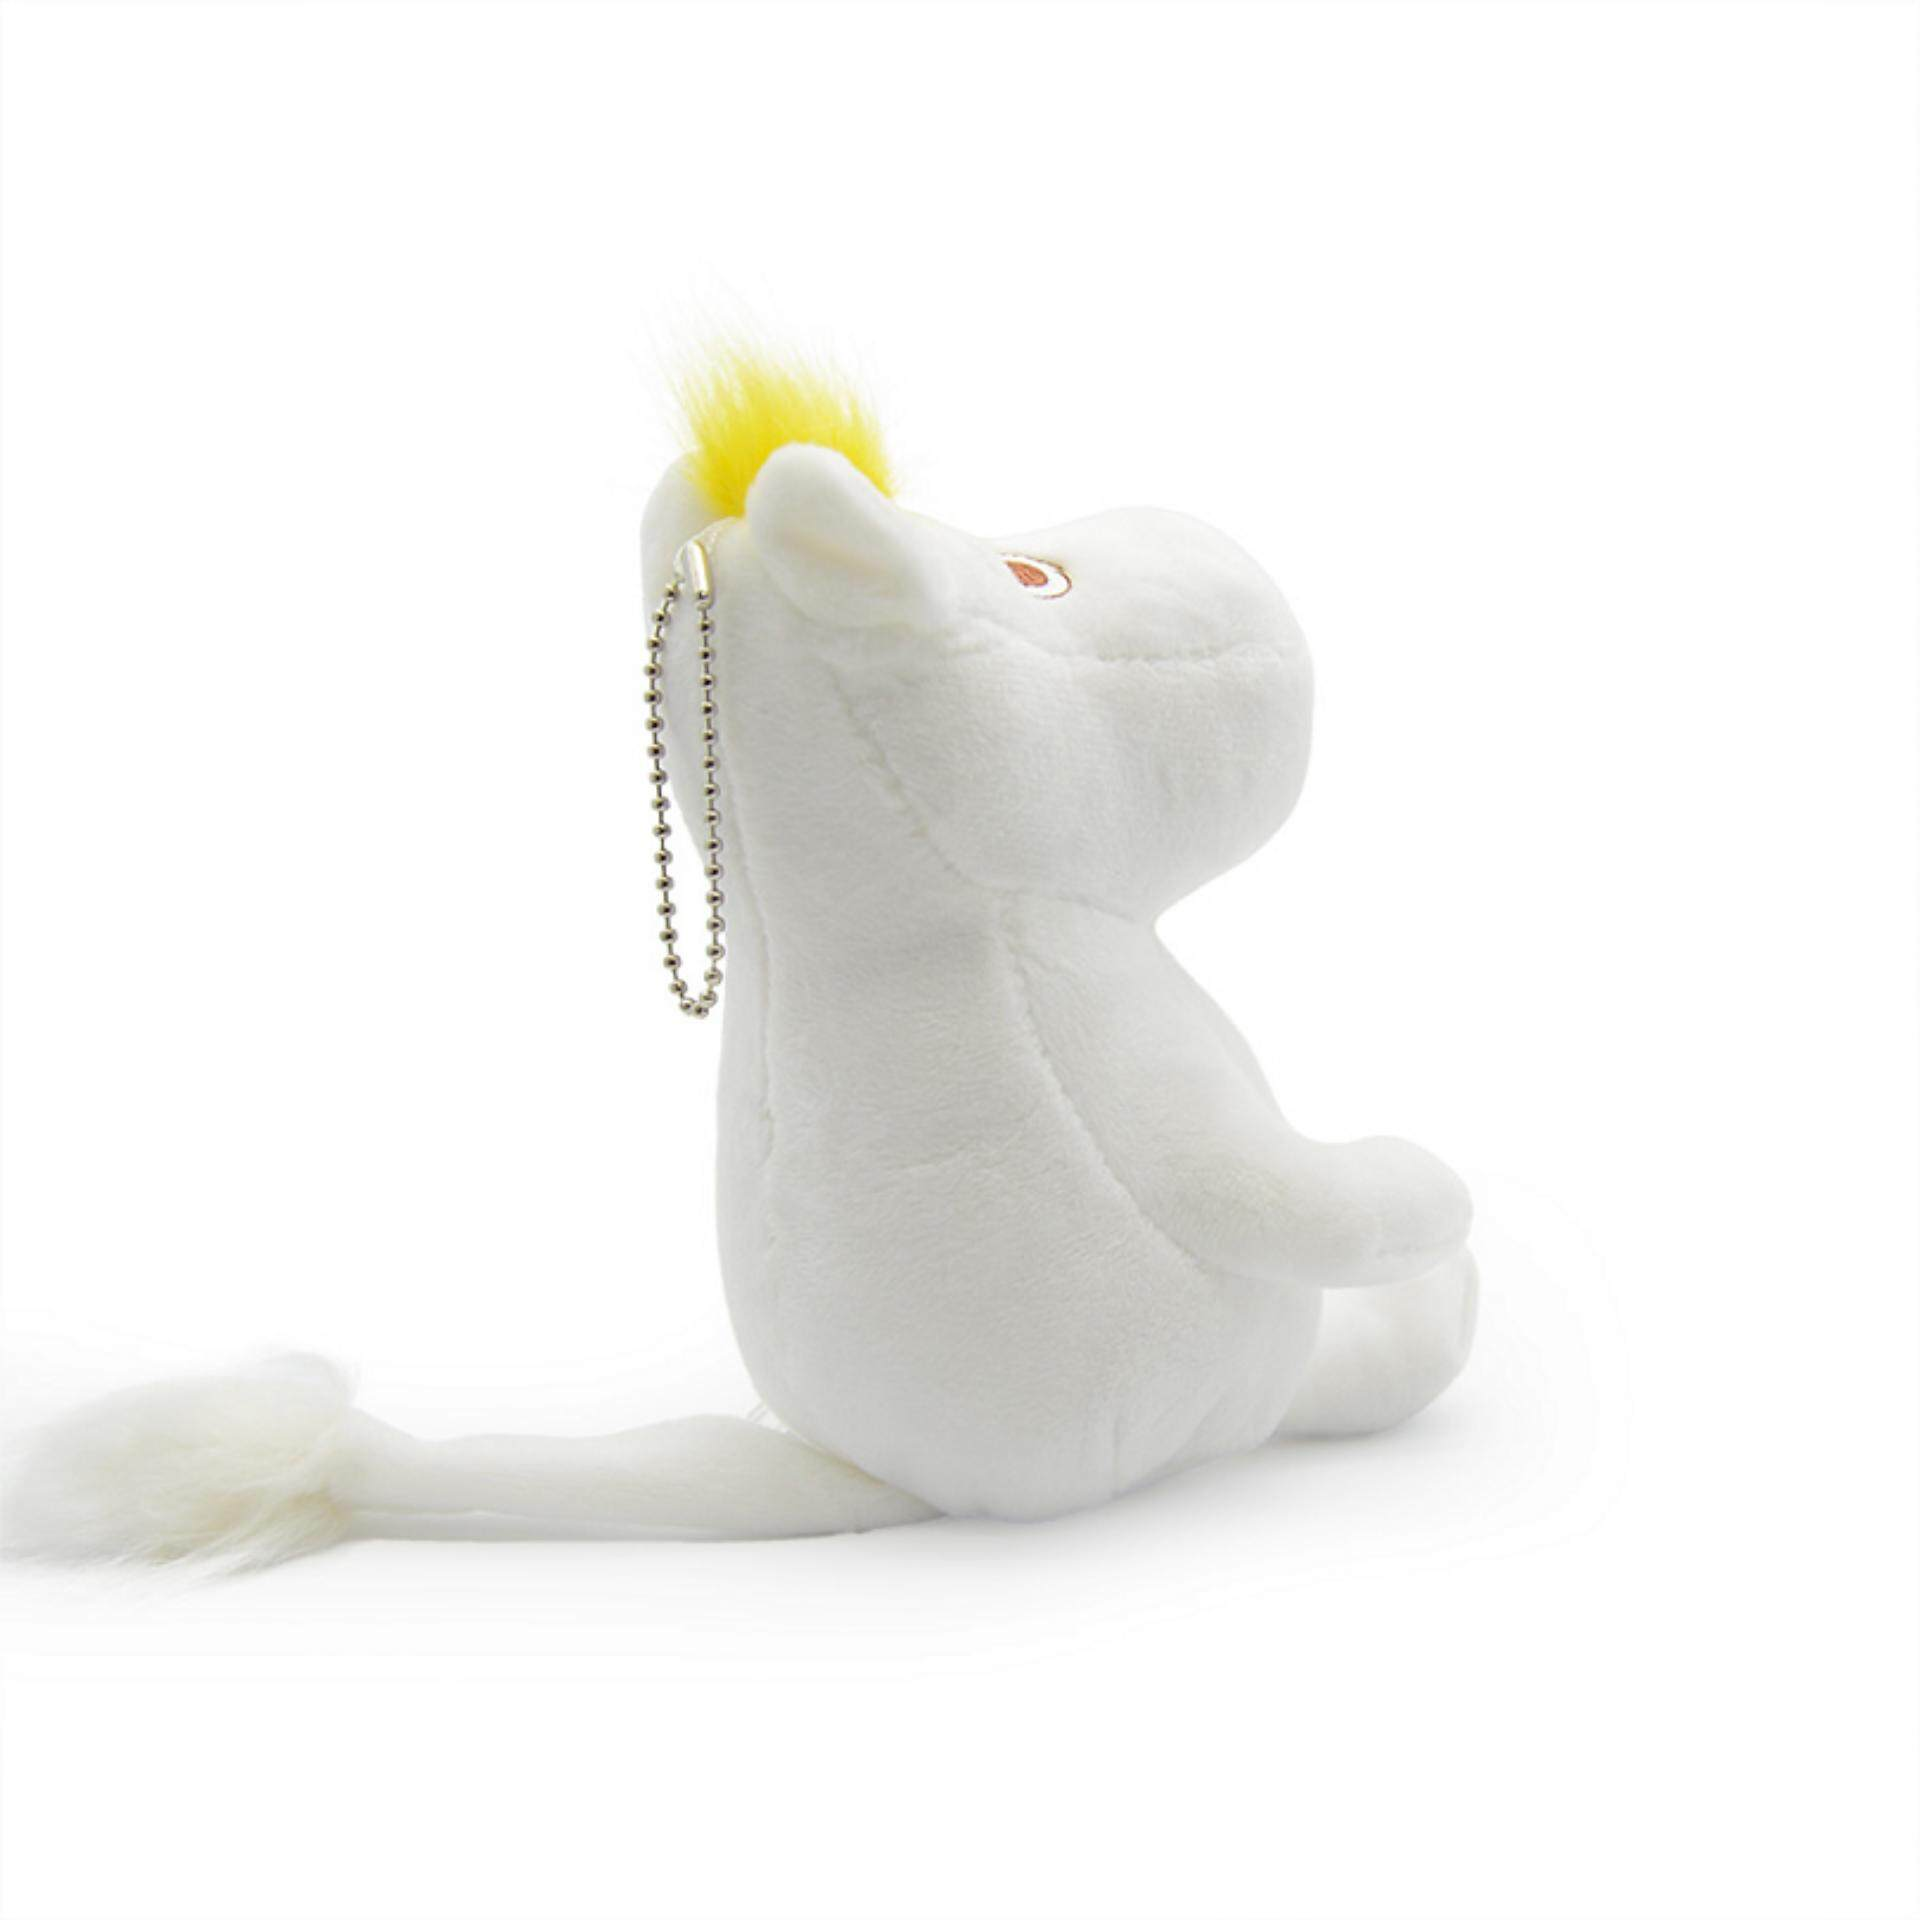 Moomin 16cm Height Plush Toy - Snork Maiden toys for girls